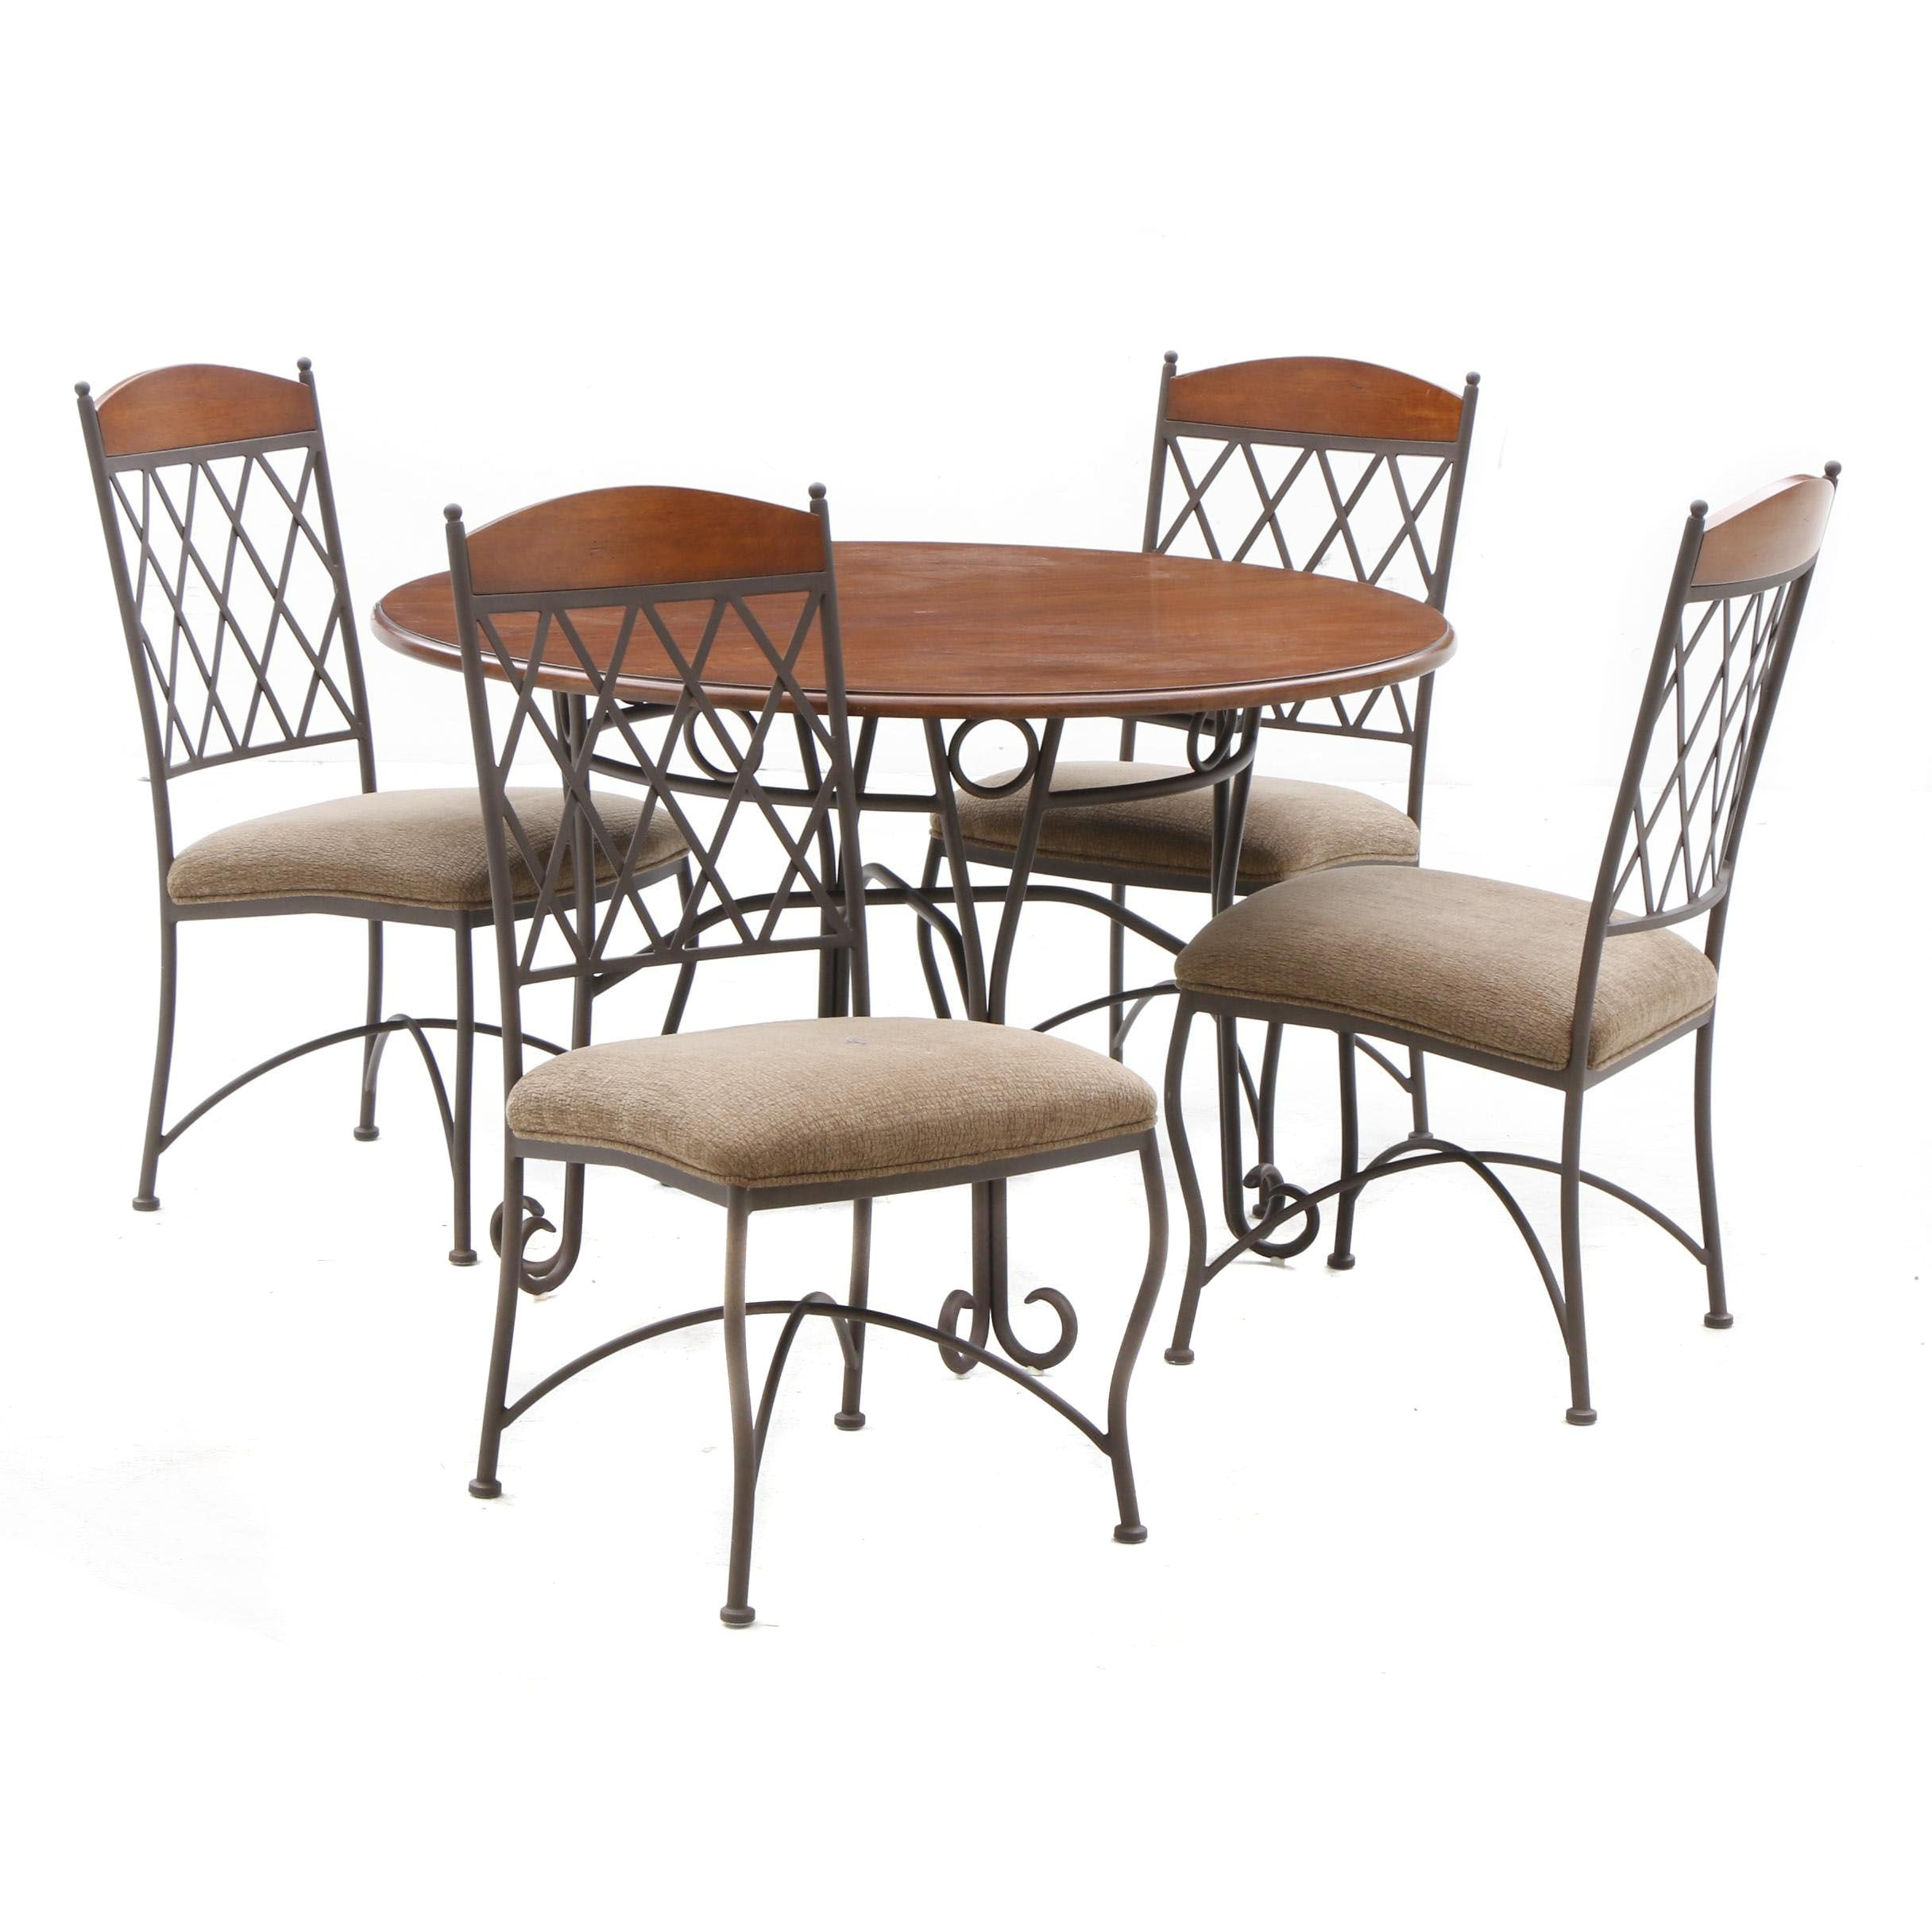 Napa Ridge Round Dining Table and Side Chairs by Minson Corporation